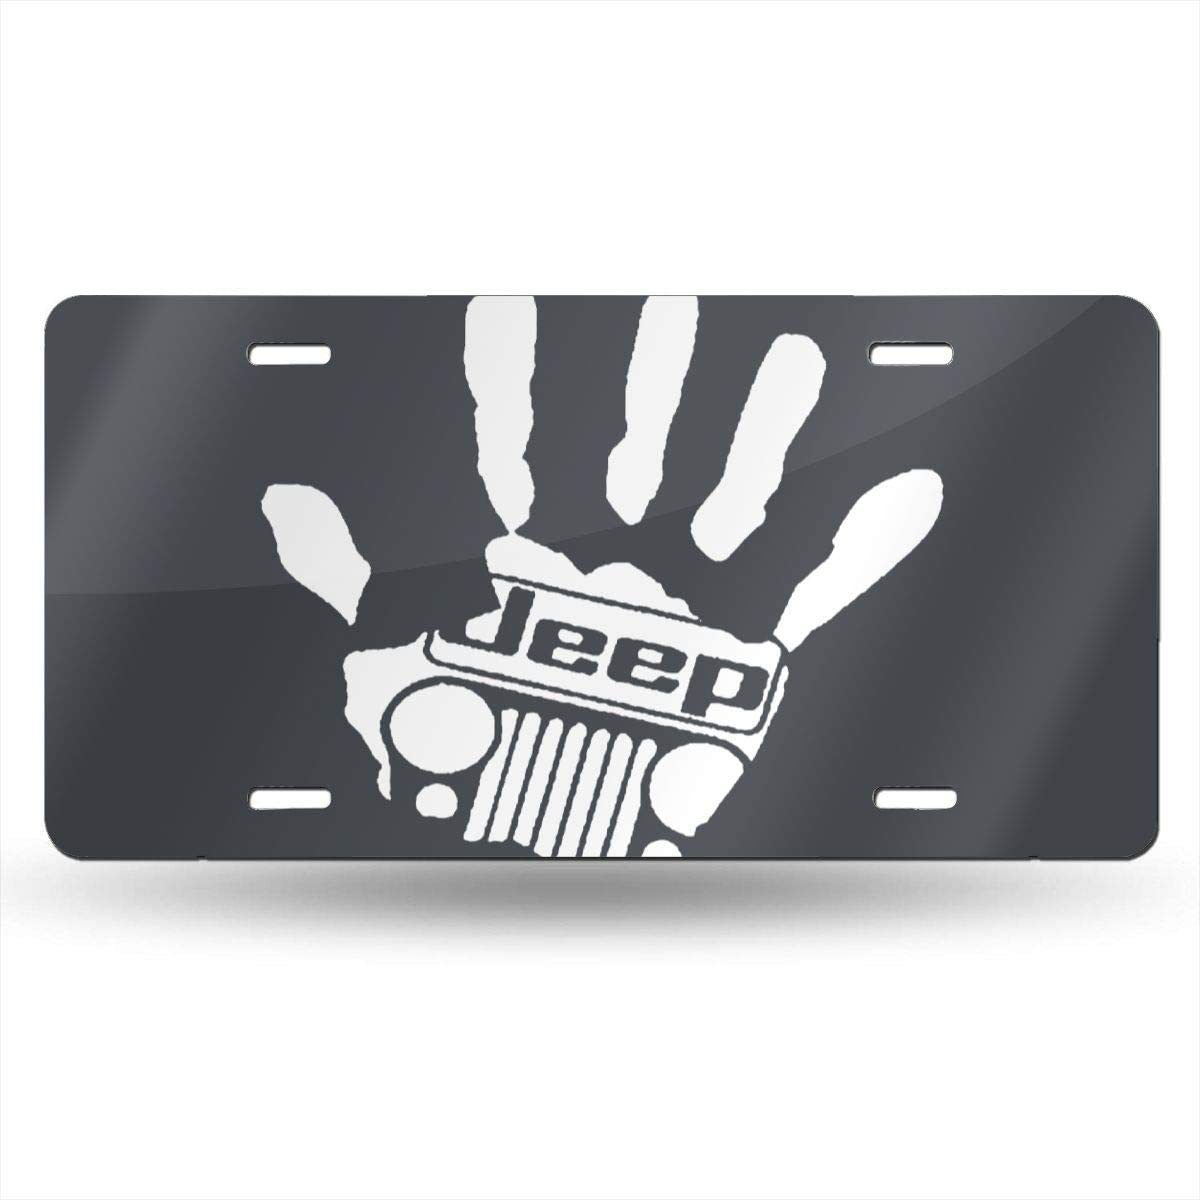 Jeep Girl License Plate Car Auto Tag Aluminum Personalized Metal Sign for Car Decoration White